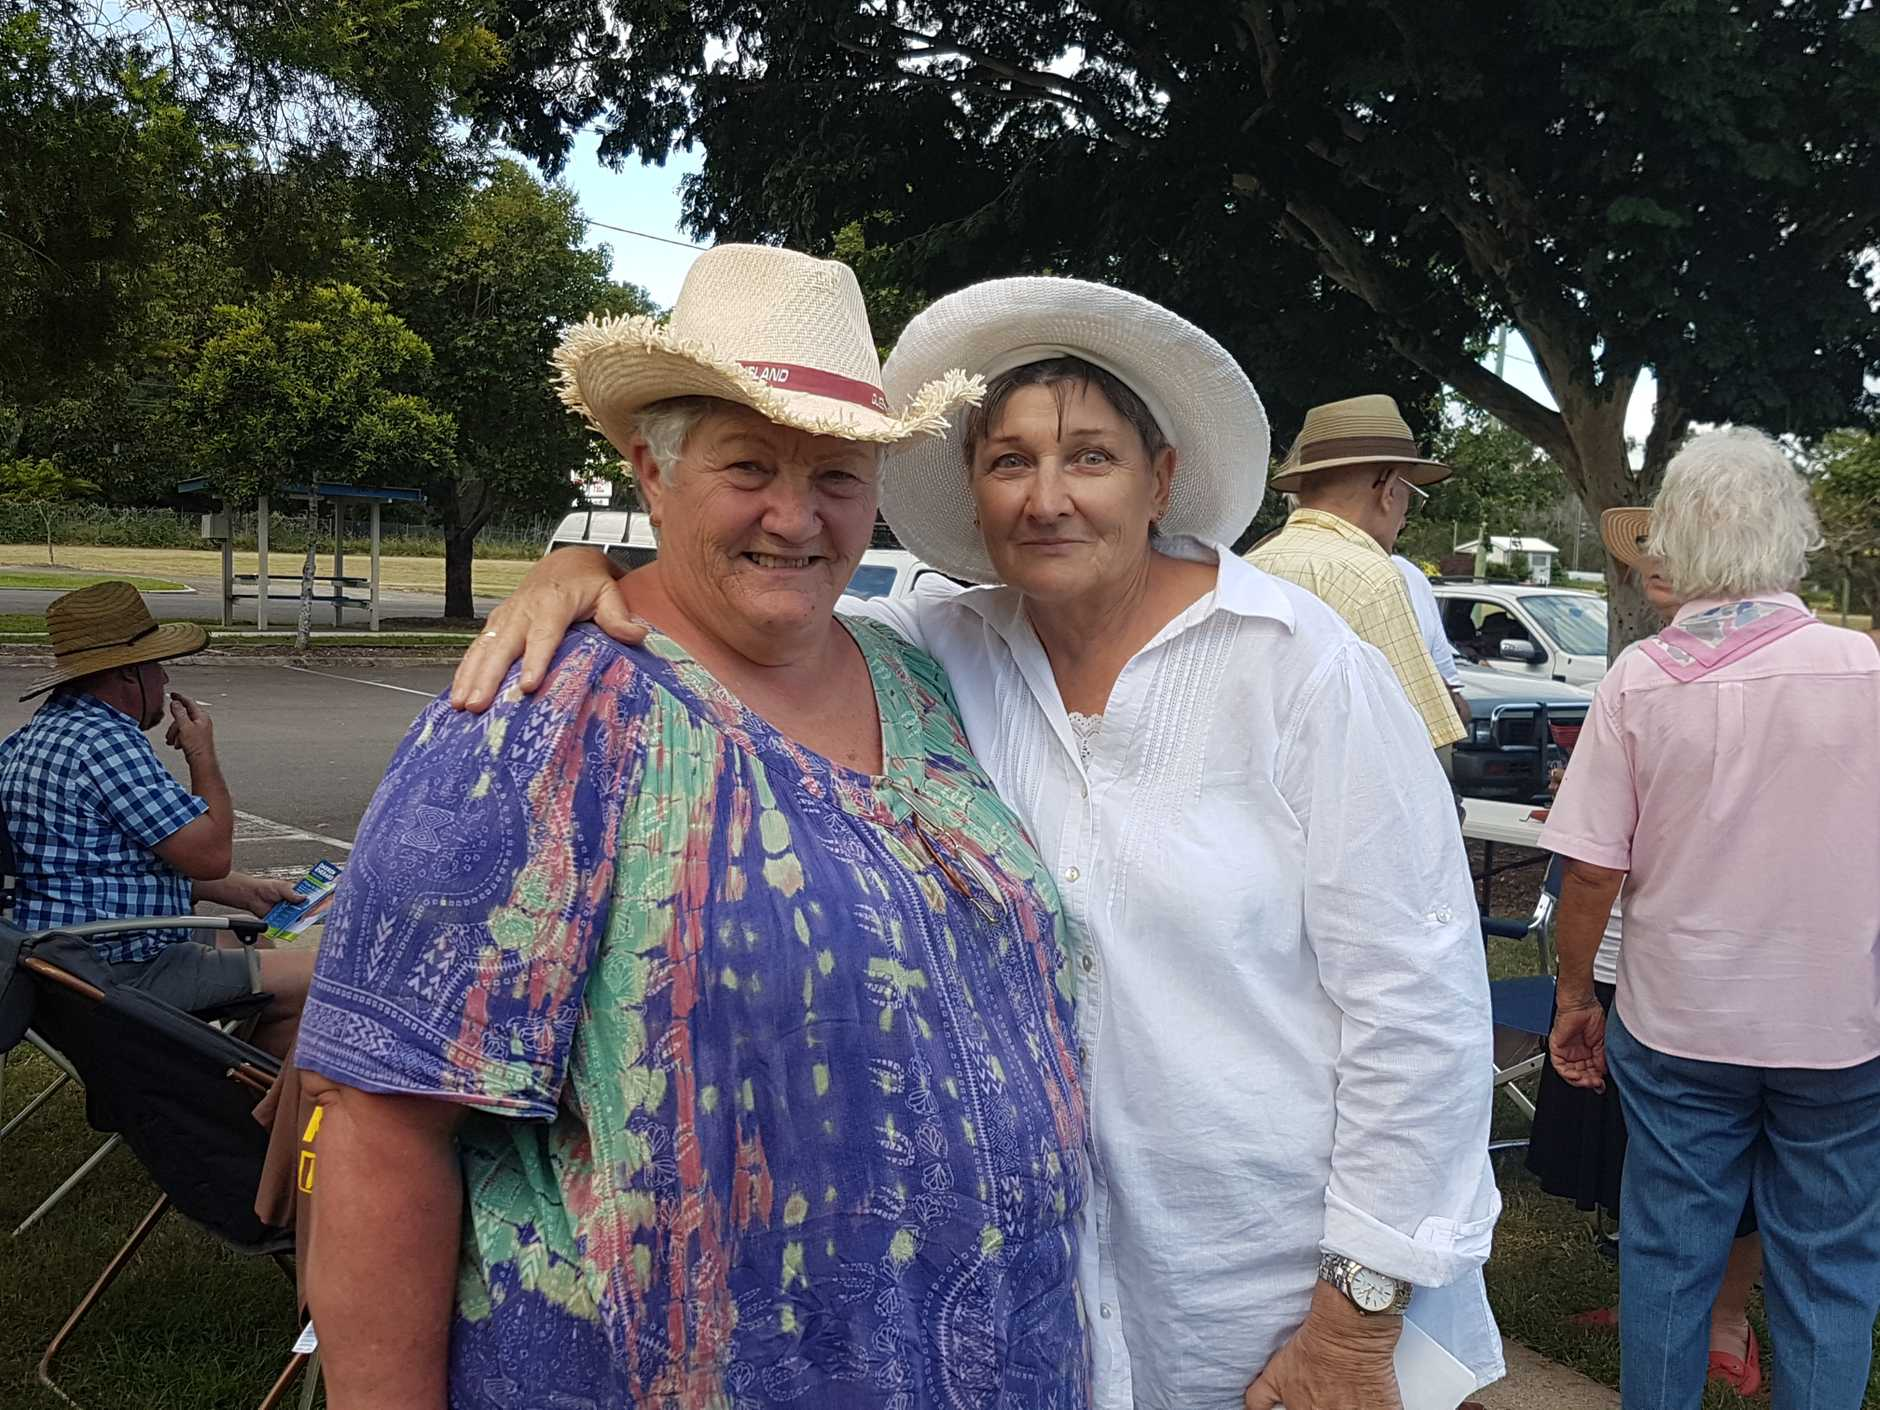 Sandra Burry and Helen Teitzel, volunteers for David Dalgleish, outside the Burrum District Community Centre on polling day after the crowds thinned out.